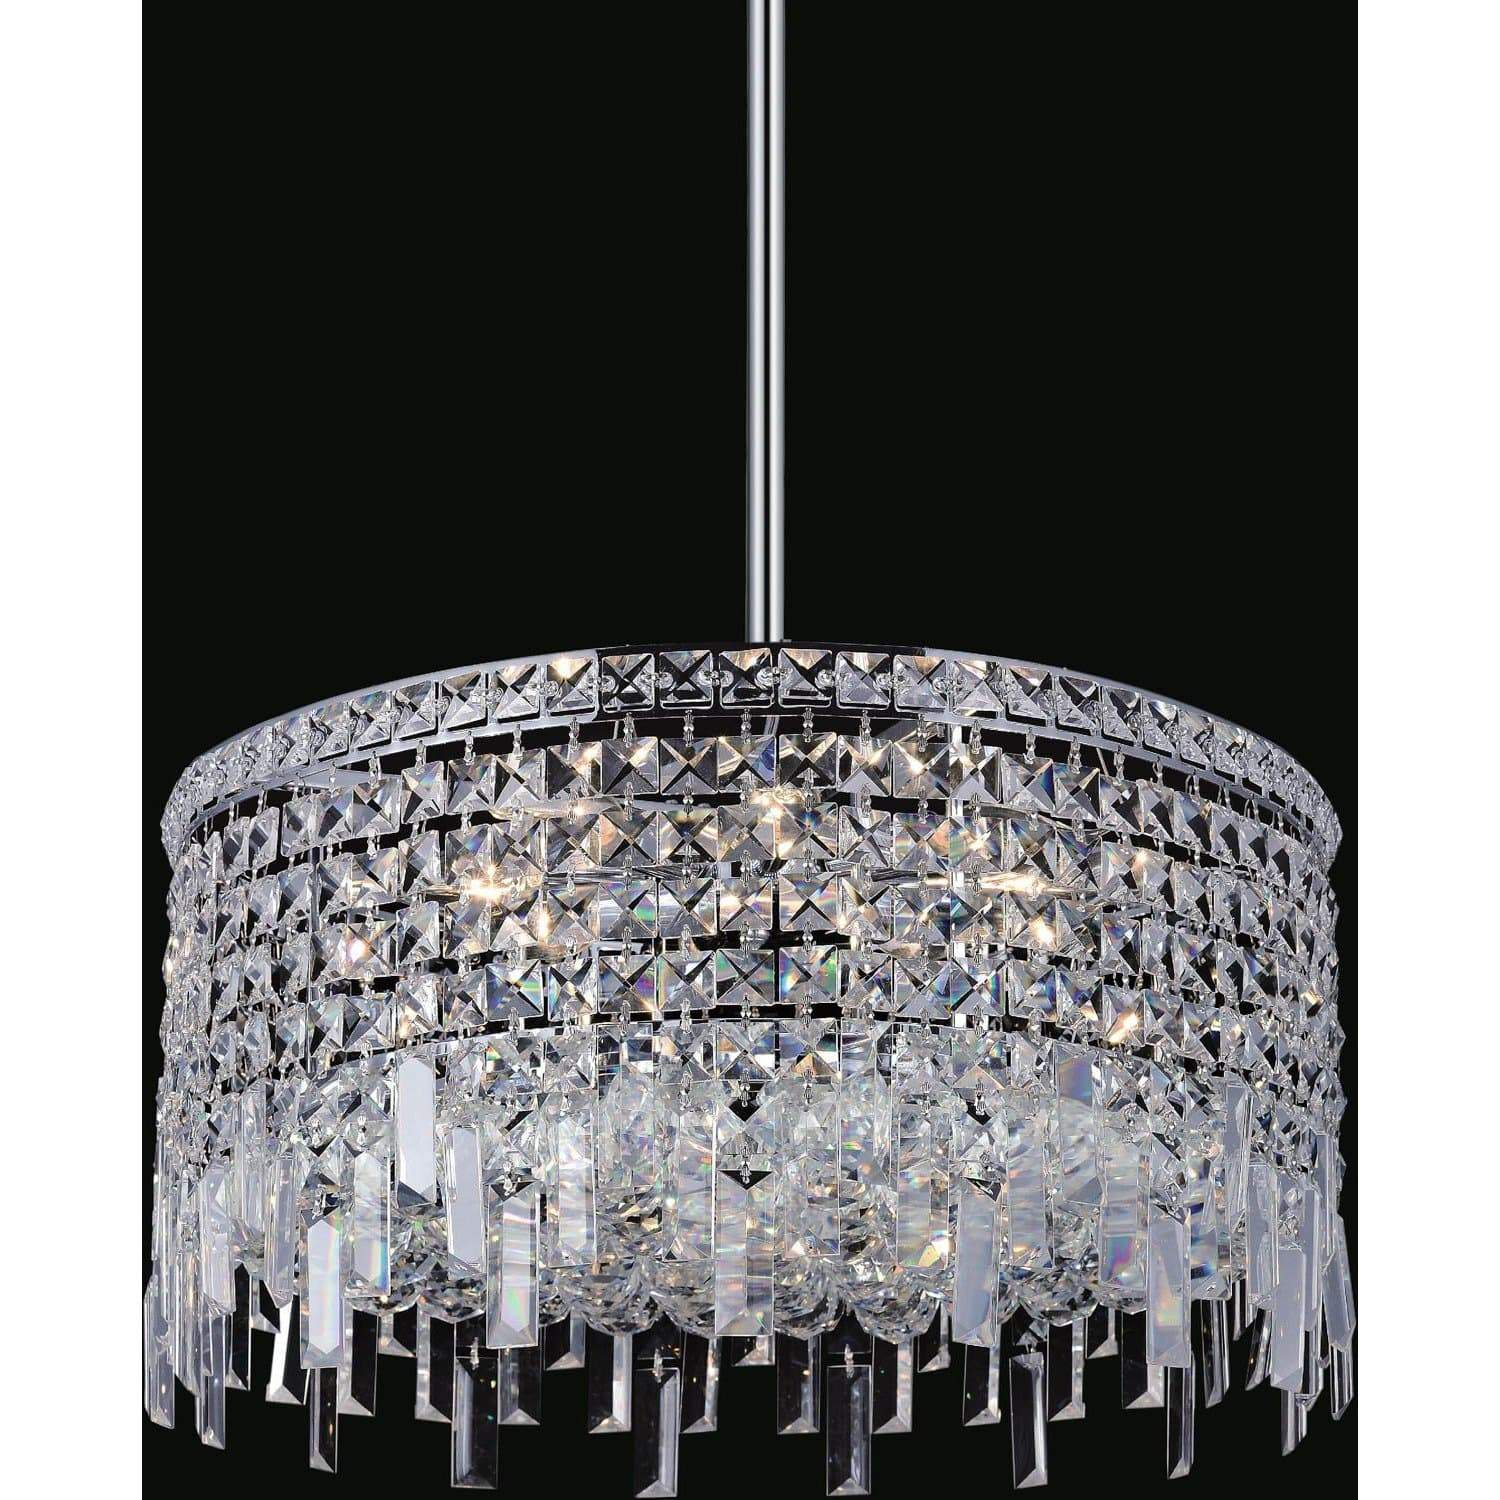 CWI Lighting Chandeliers Chrome / K9 Clear Colosseum 8 Light Down Chandelier with Chrome finish by CWI Lighting 8031P20C-R